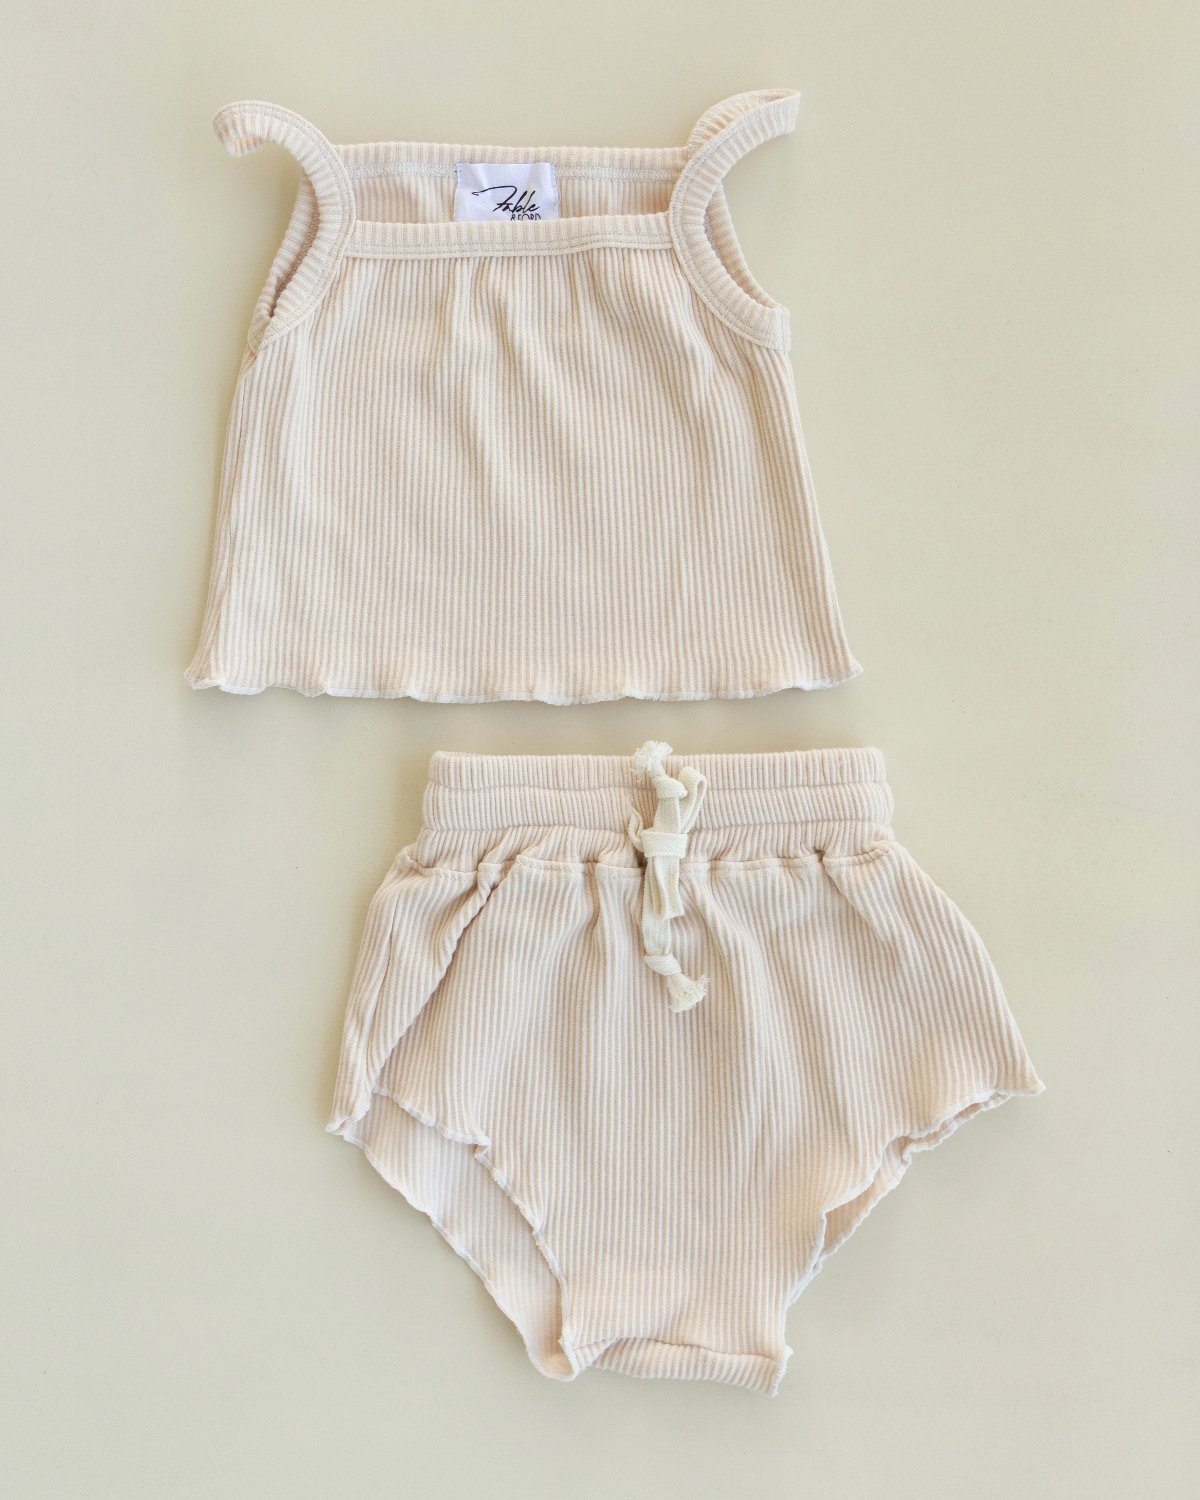 US stockist of Fable & Ford's 2Pc Vanilla Ariel Set